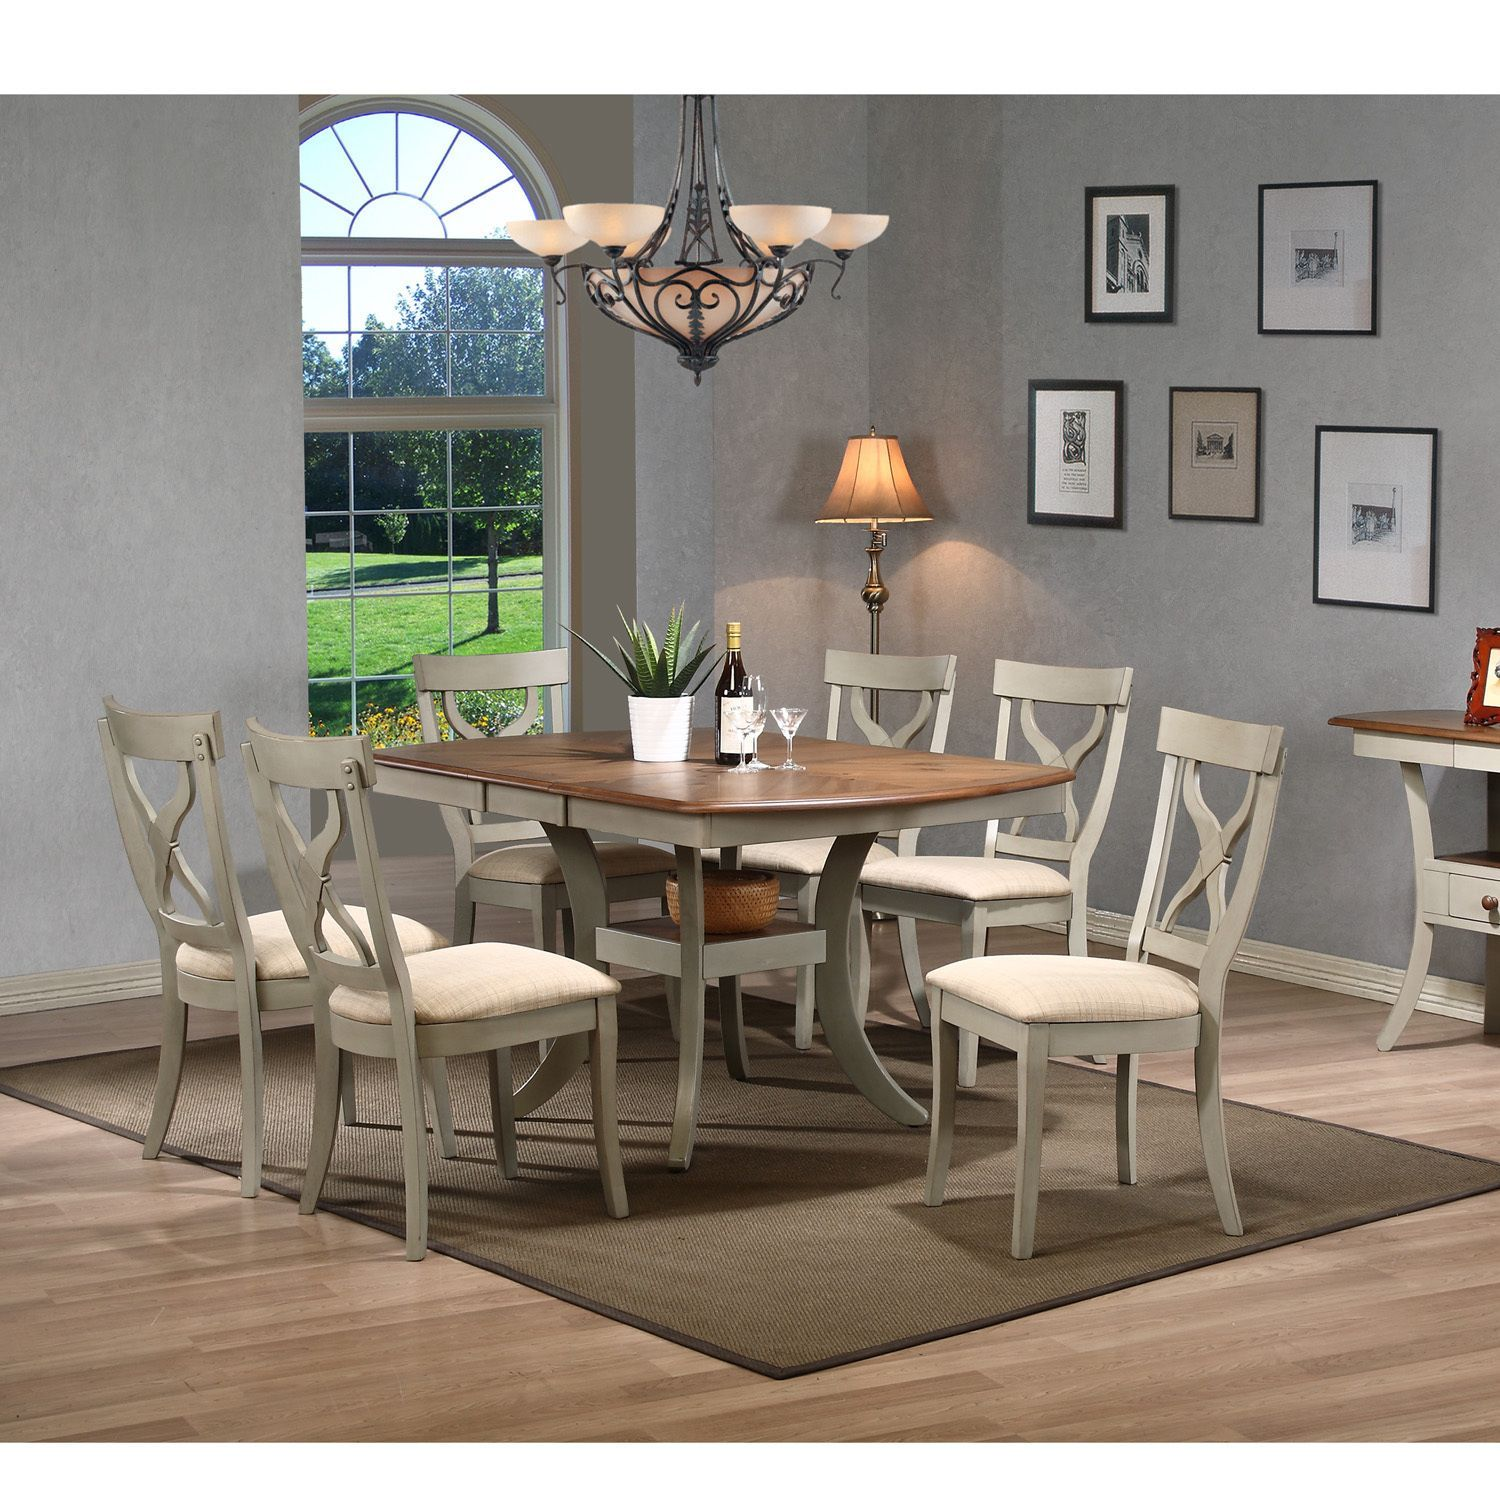 Balmoral Shabby Chic Country Cottage Antique Oak Wood And Distressed Light Grey 7 Piece Dining Set By Baxton Studio